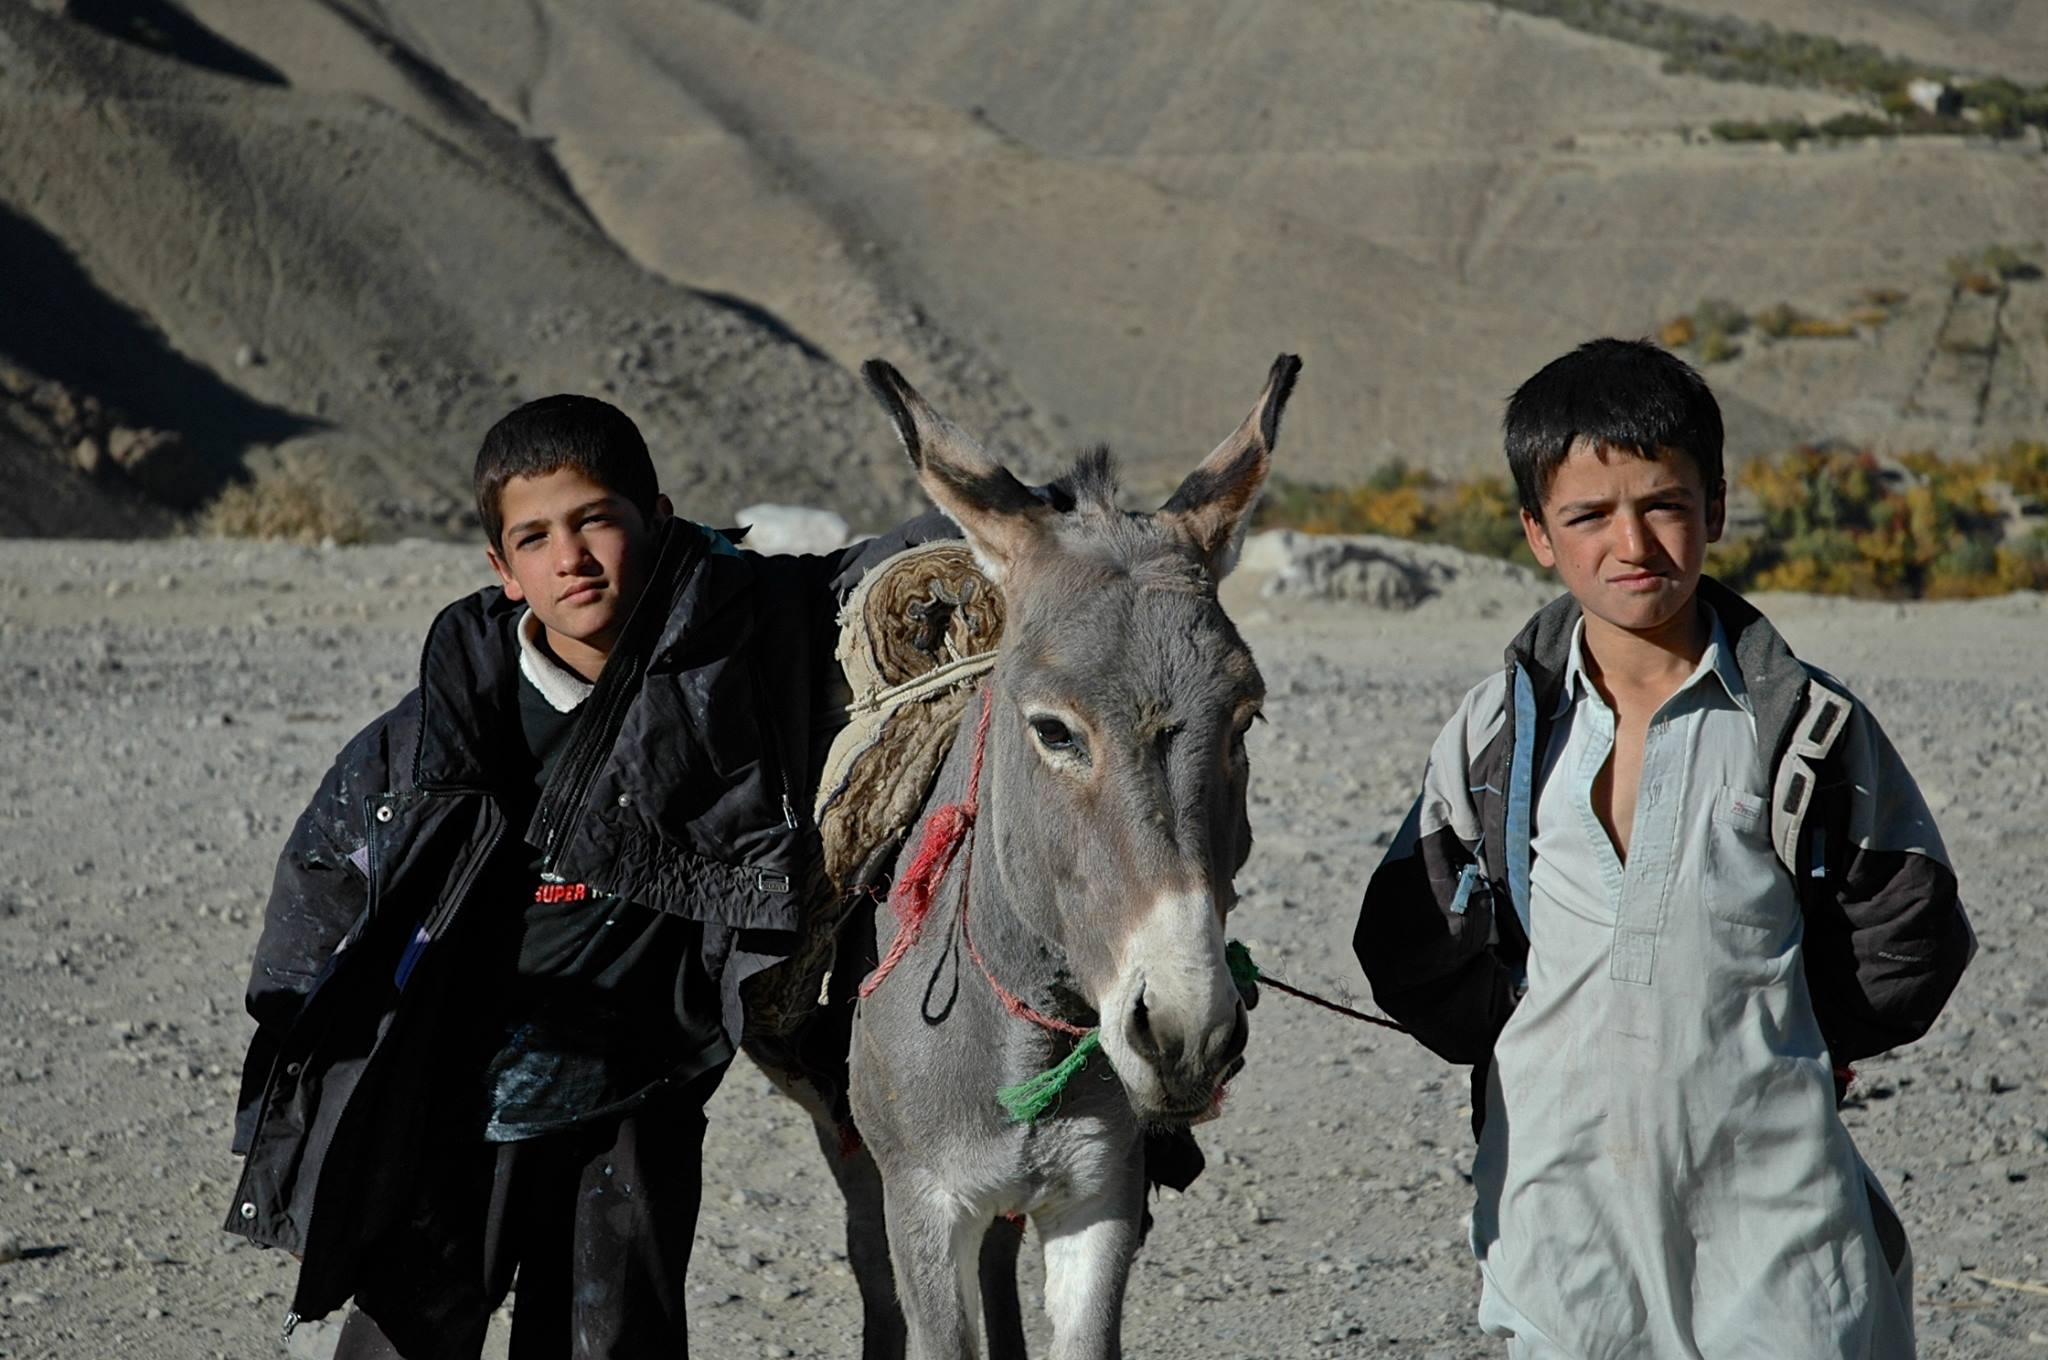 Panjir Valley, Afghanistan 2007 by Robert Malin Young